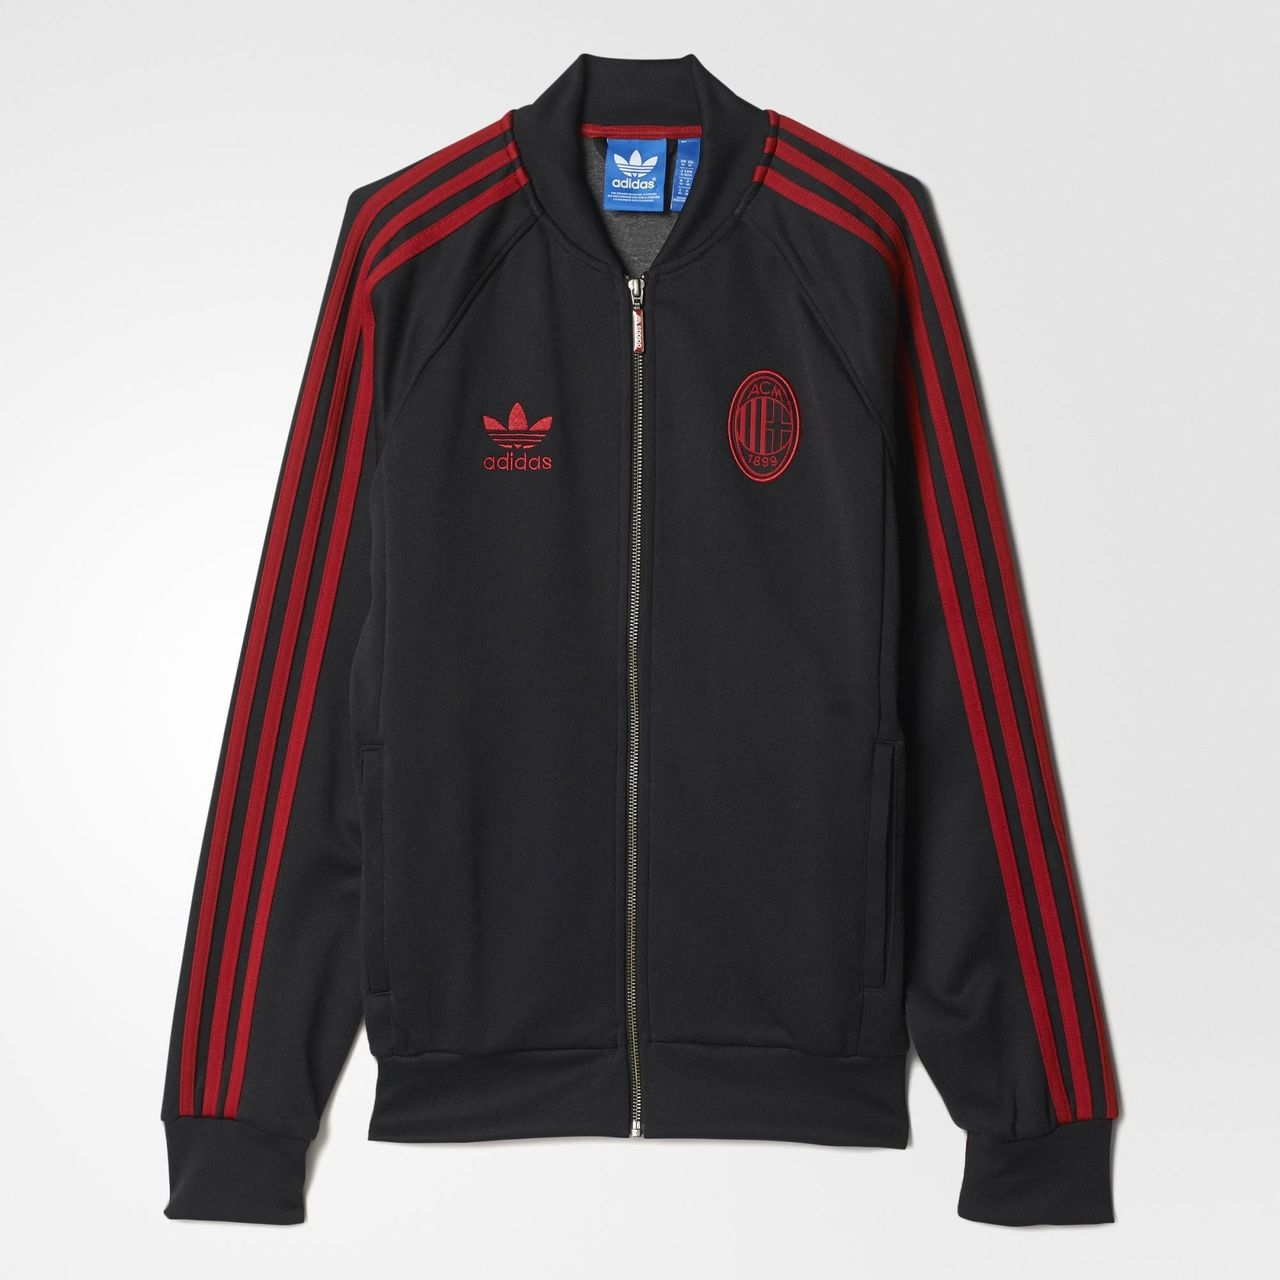 adidas ac milan superstar track jacket black victory red jackets football fashion blog. Black Bedroom Furniture Sets. Home Design Ideas